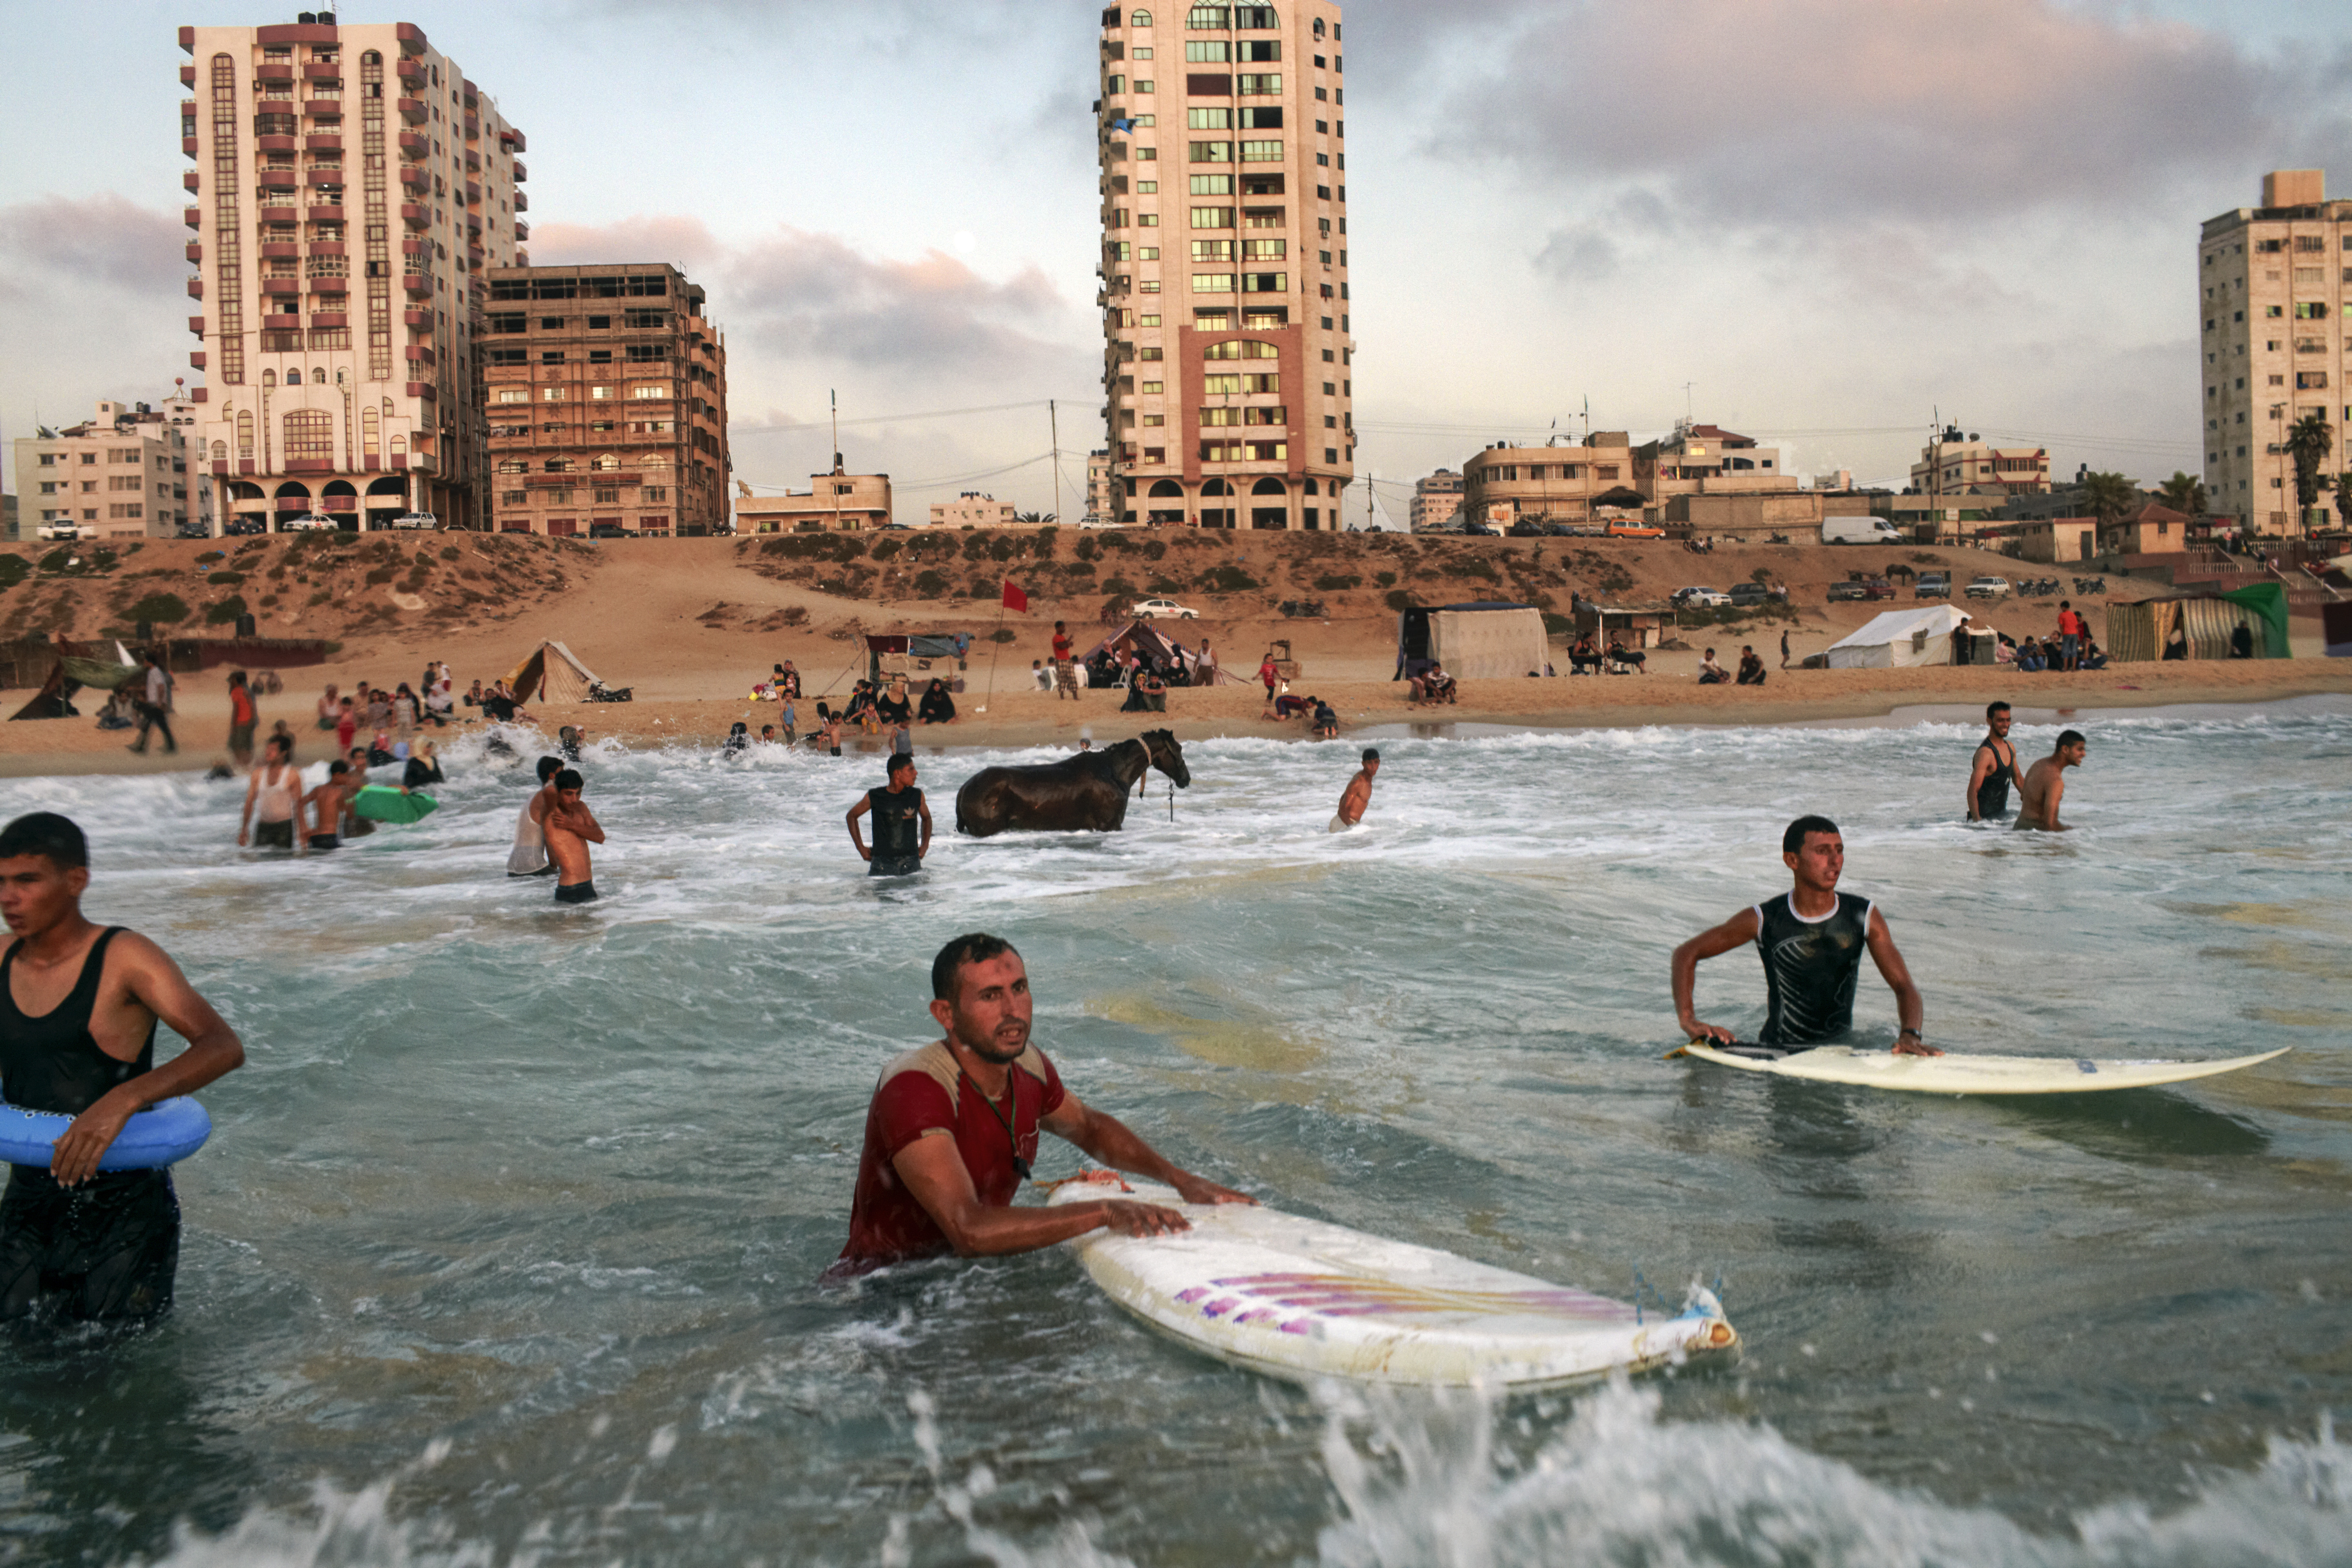 Still from the film Gaza shows Palestinian men surfing in the sea.